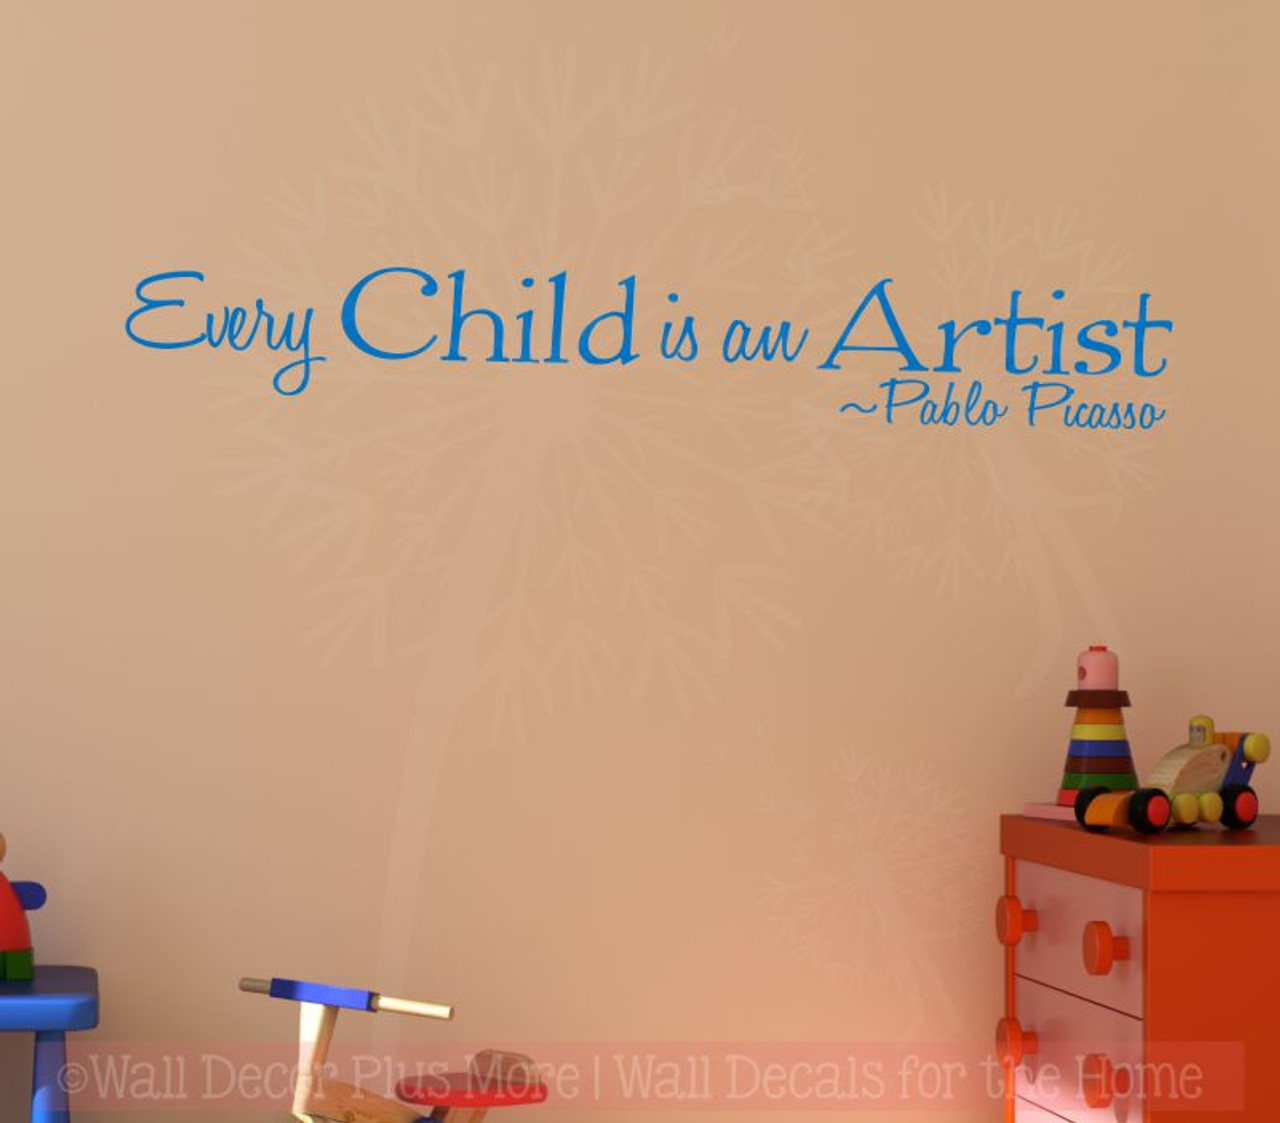 every child is an artist, pablo picasso vinyl letters wall stickers